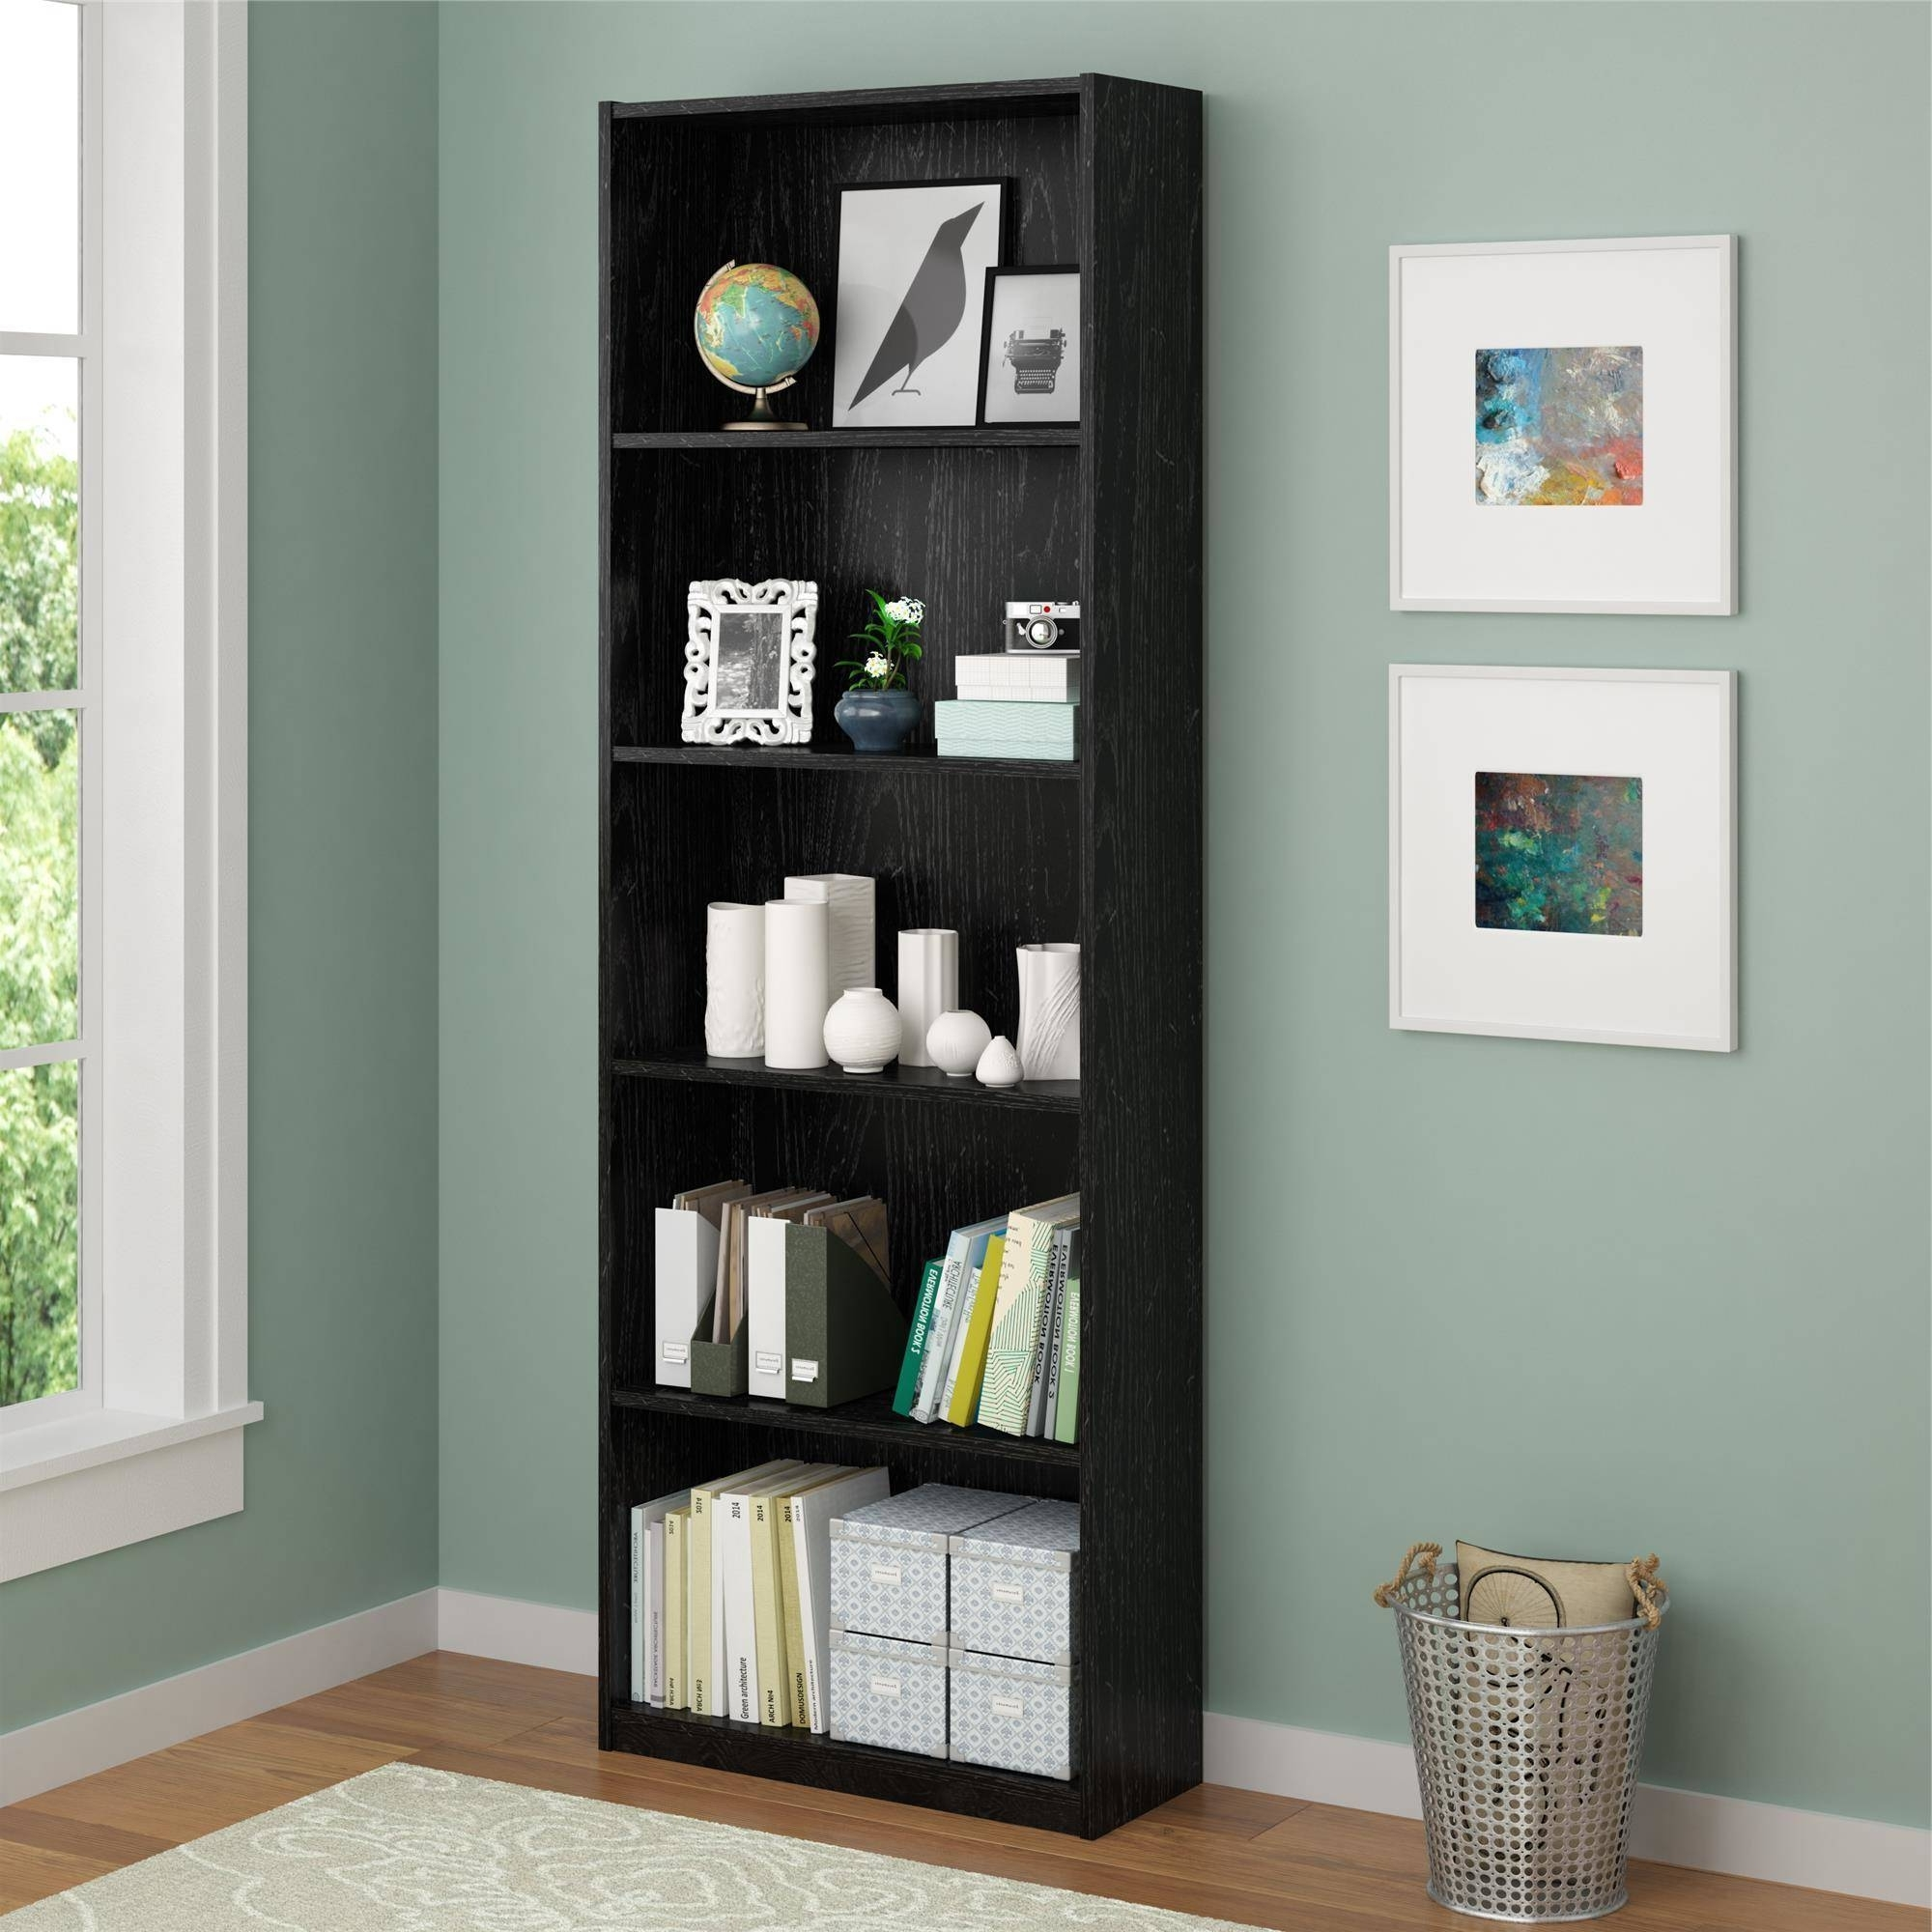 Ameriwood 5 Shelf Bookcases, Set Of 2 (mix And Match) – Walmart Within Latest Espresso Bookcases (View 9 of 15)